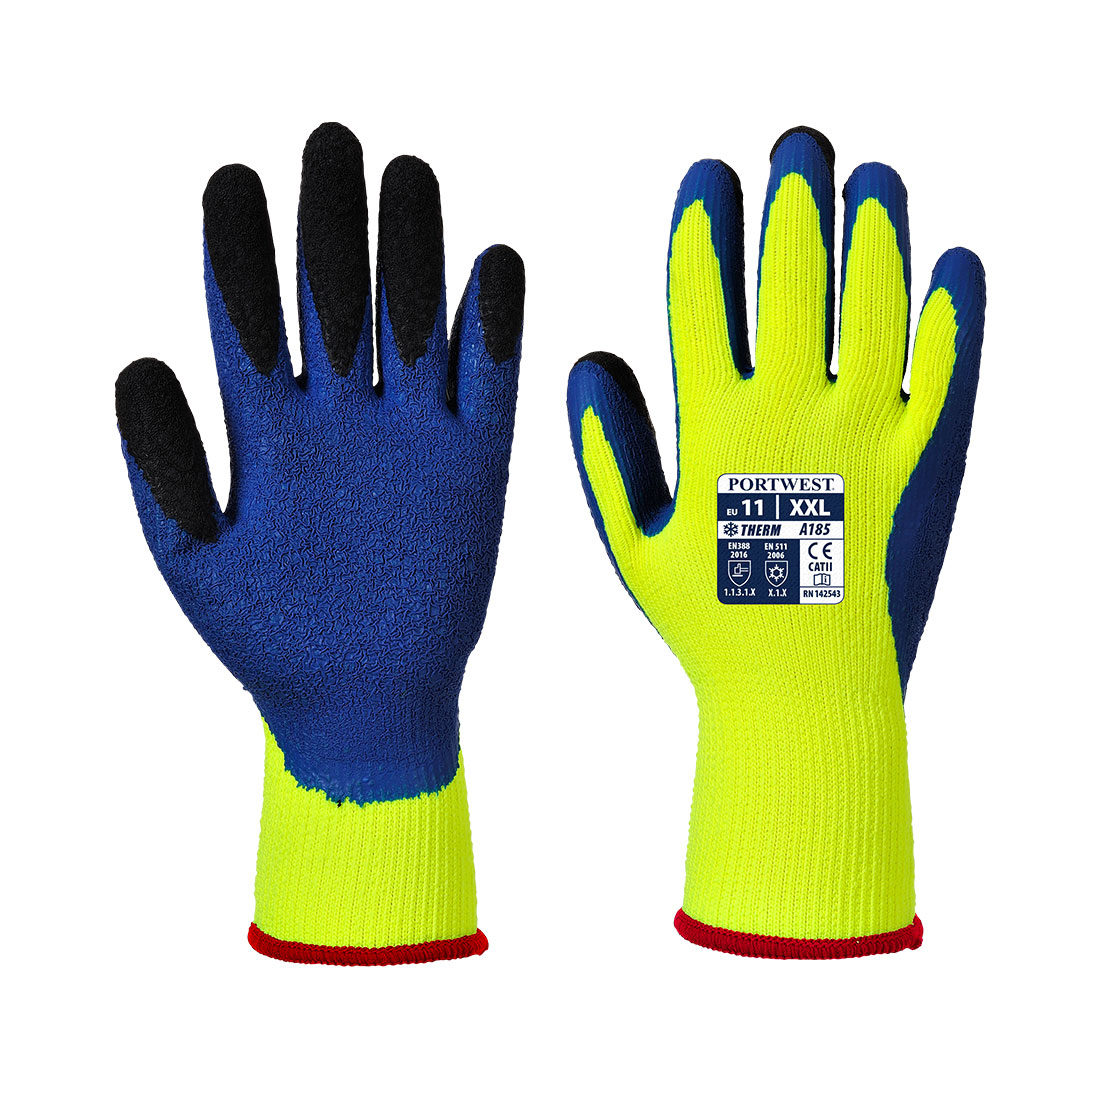 Duo-Therm Handschuh